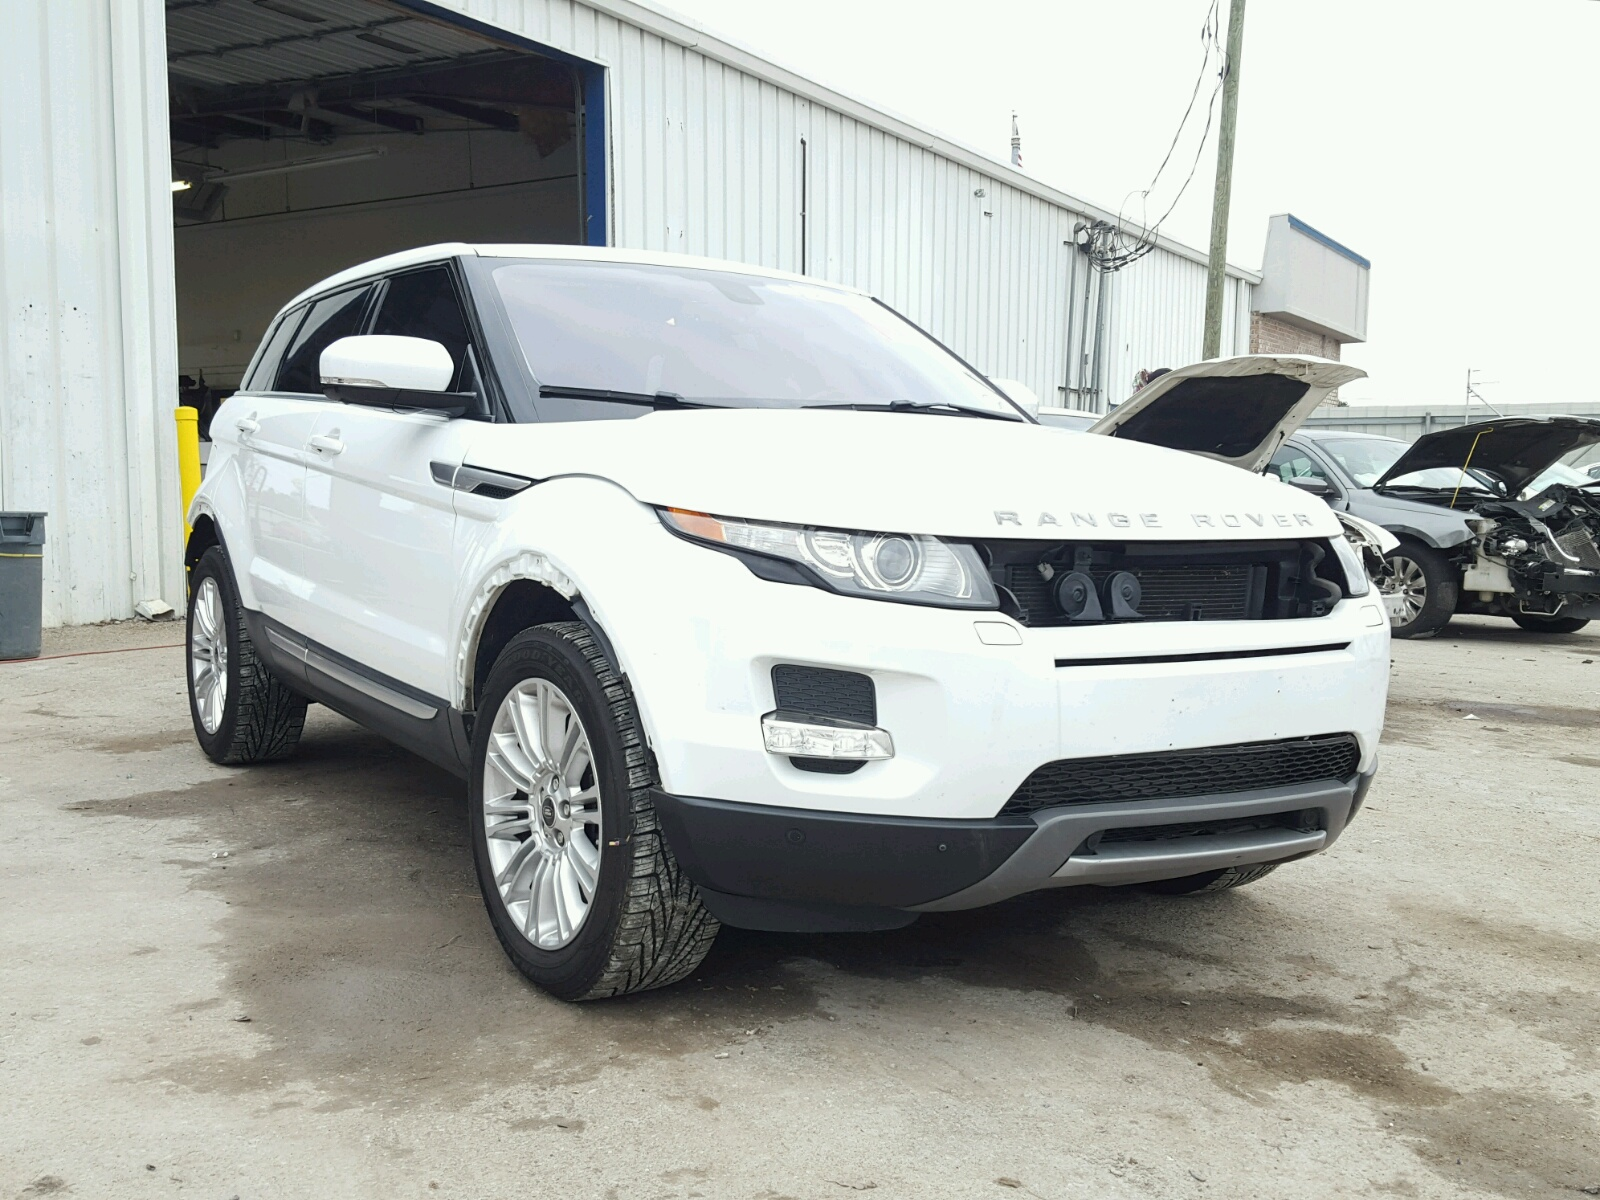 stock land for used hse sale htm lux c landrover rover range sport